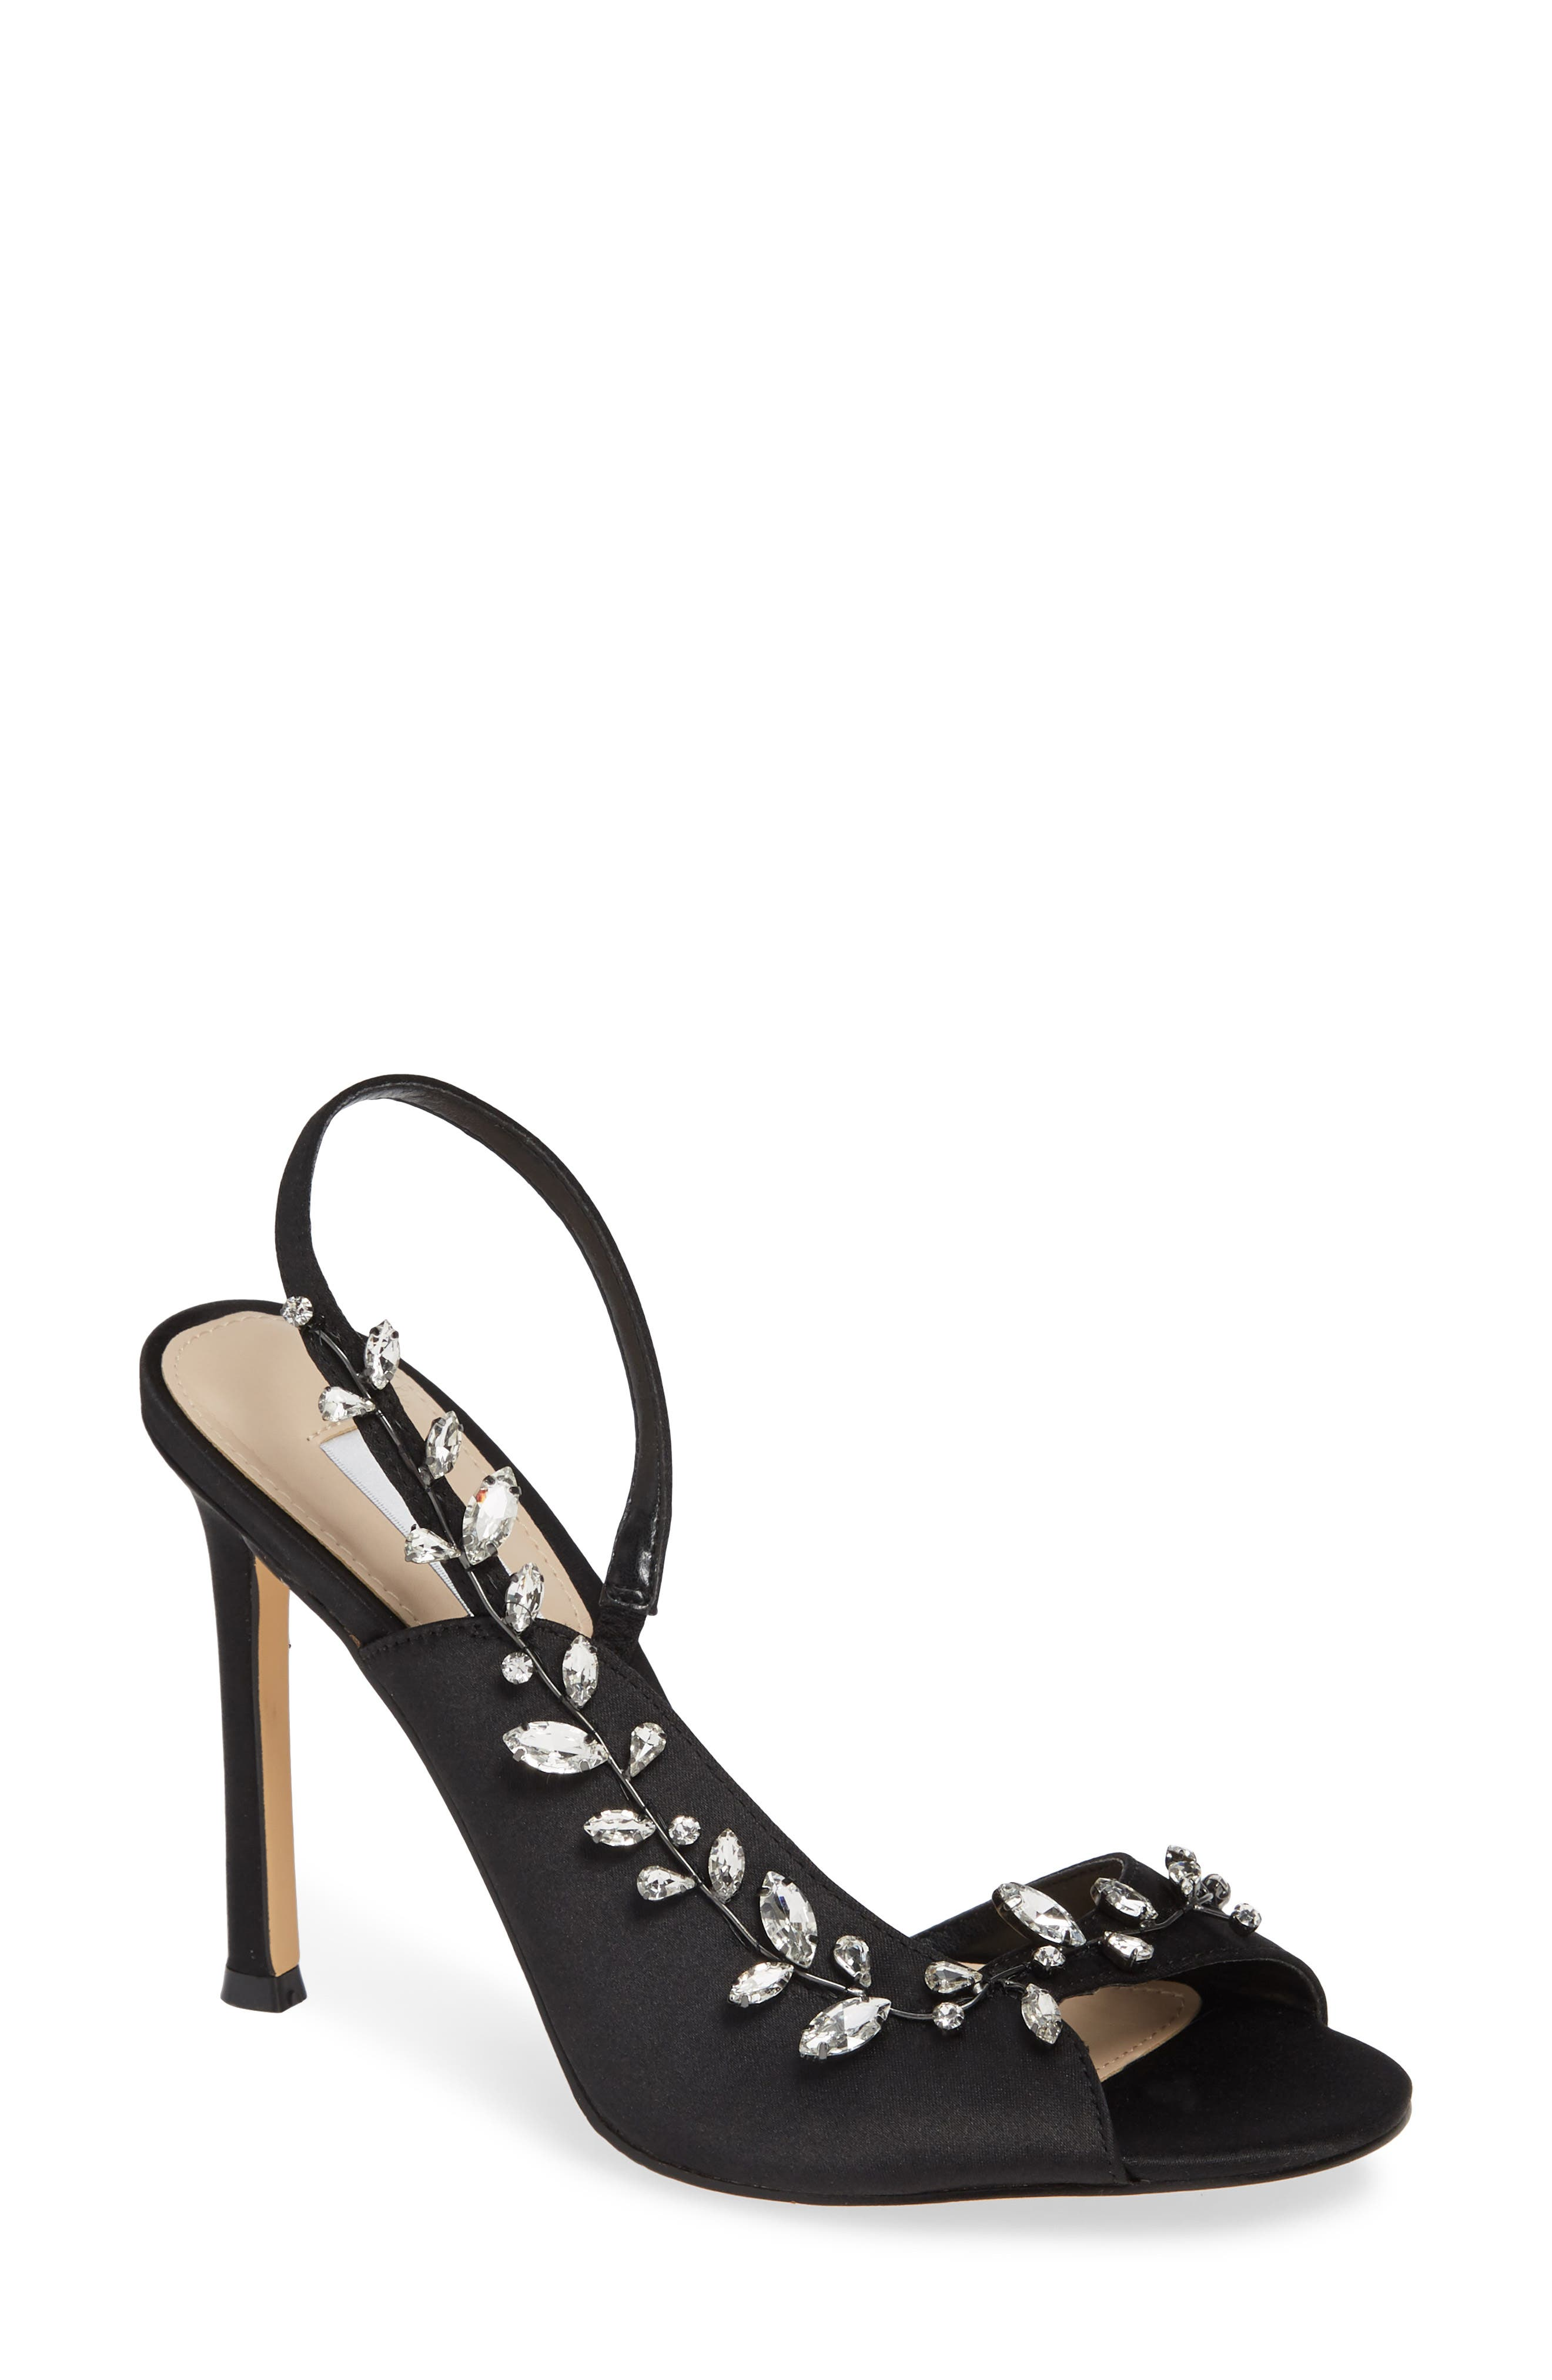 Deanna Embellished Sandal,                         Main,                         color, BLACK SATIN